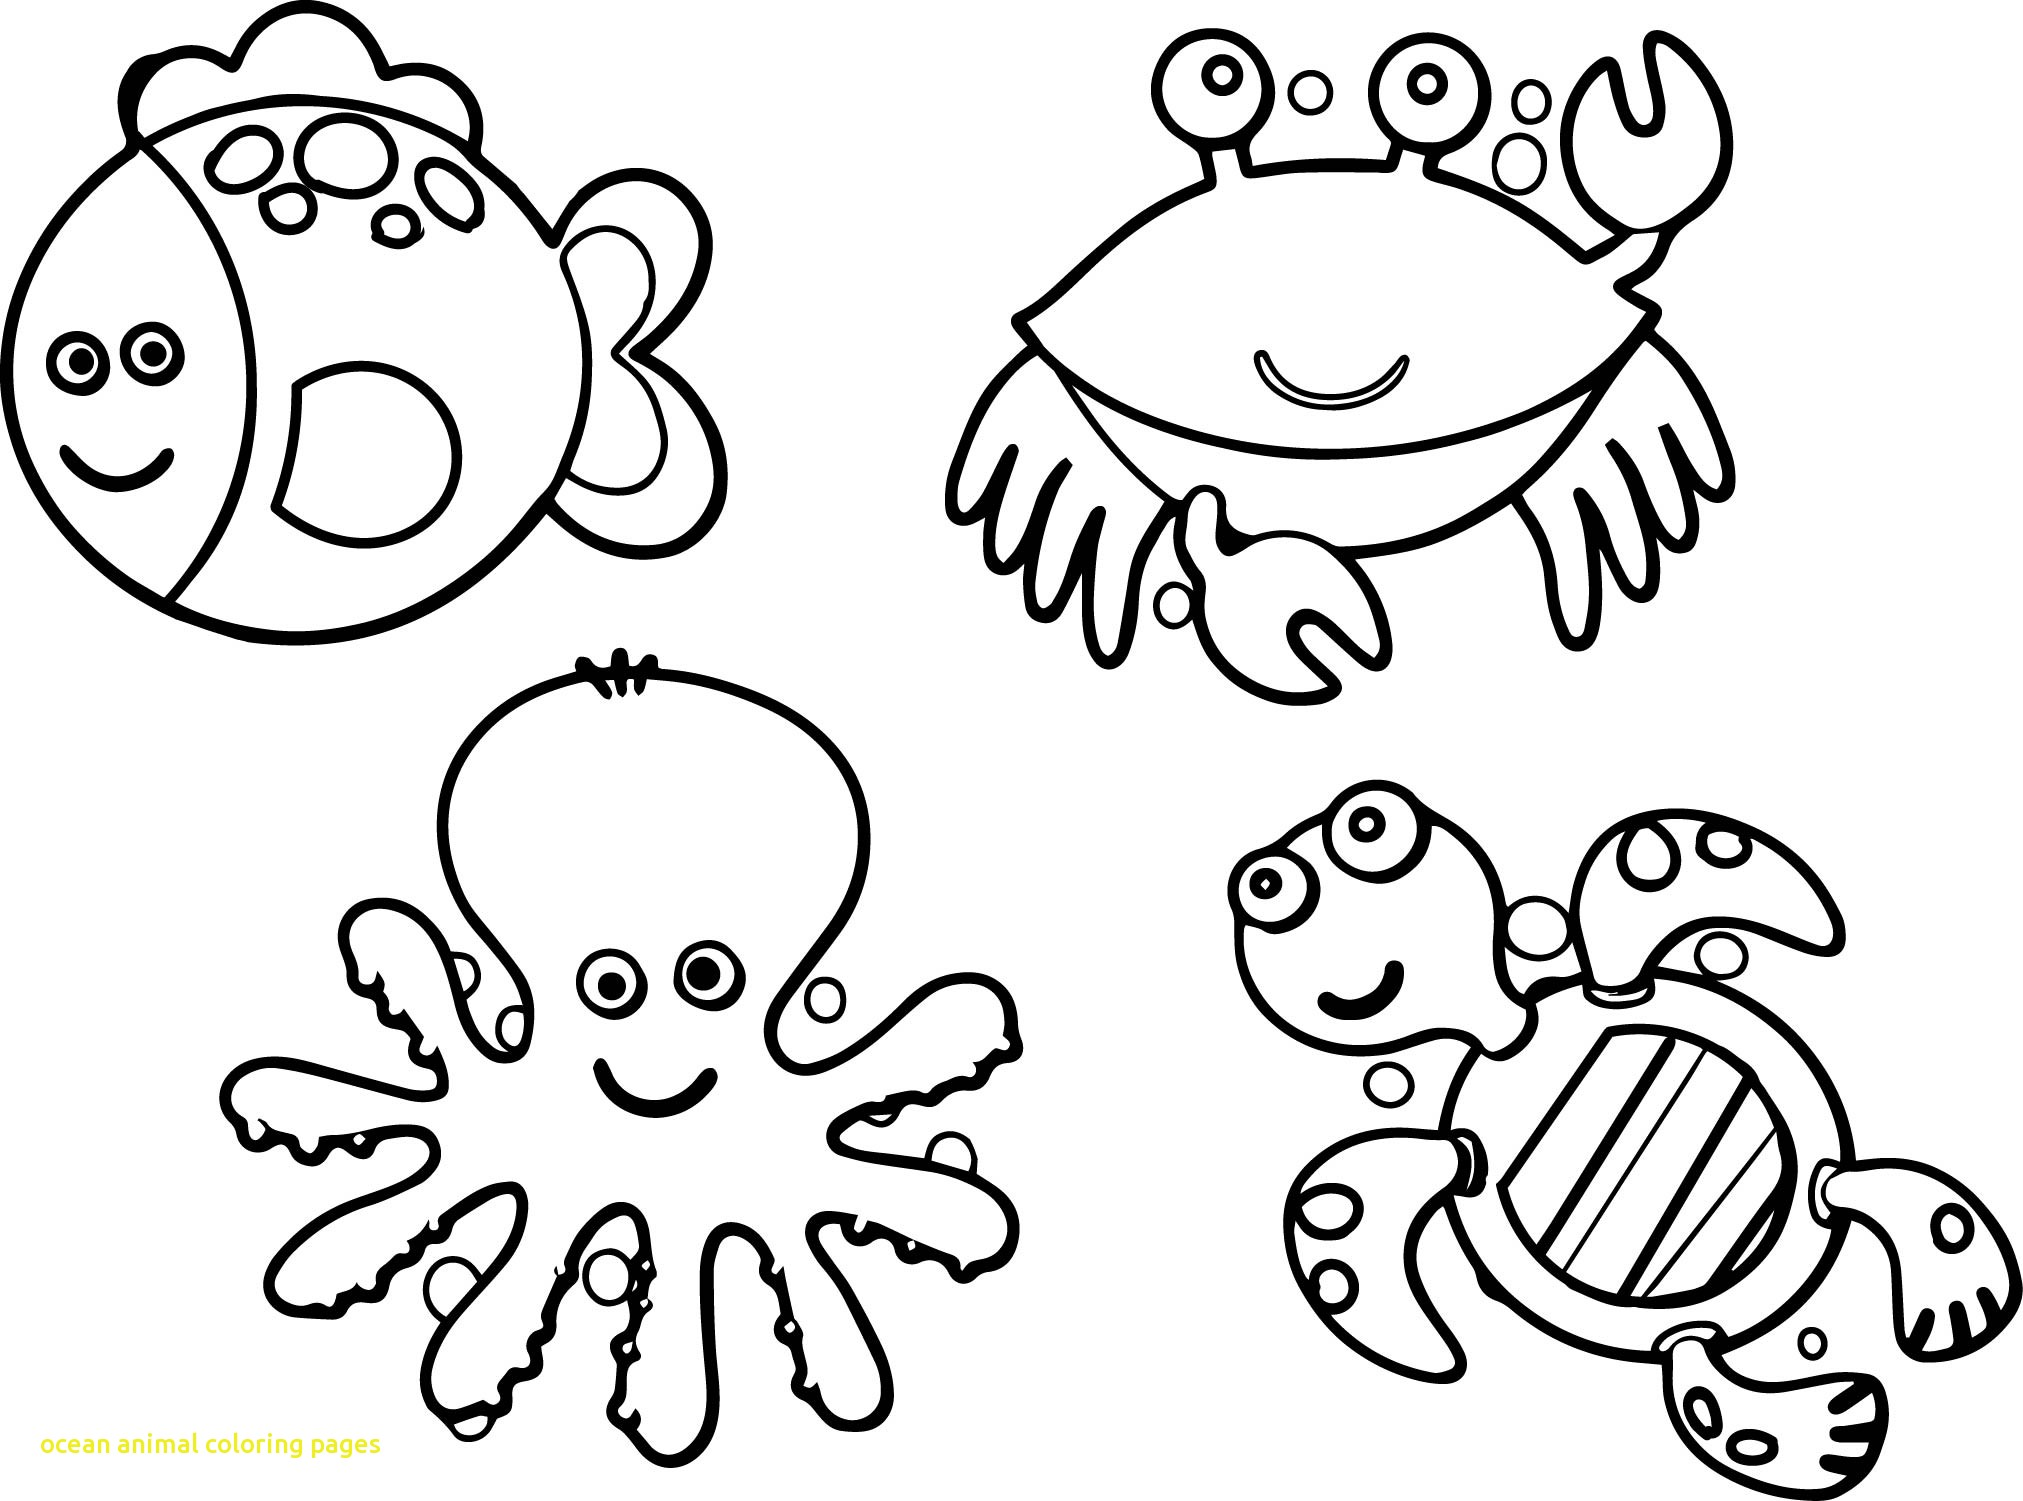 2023x1501 Ocean Animal Coloring Pages With Sea Creatures Coloring Pages